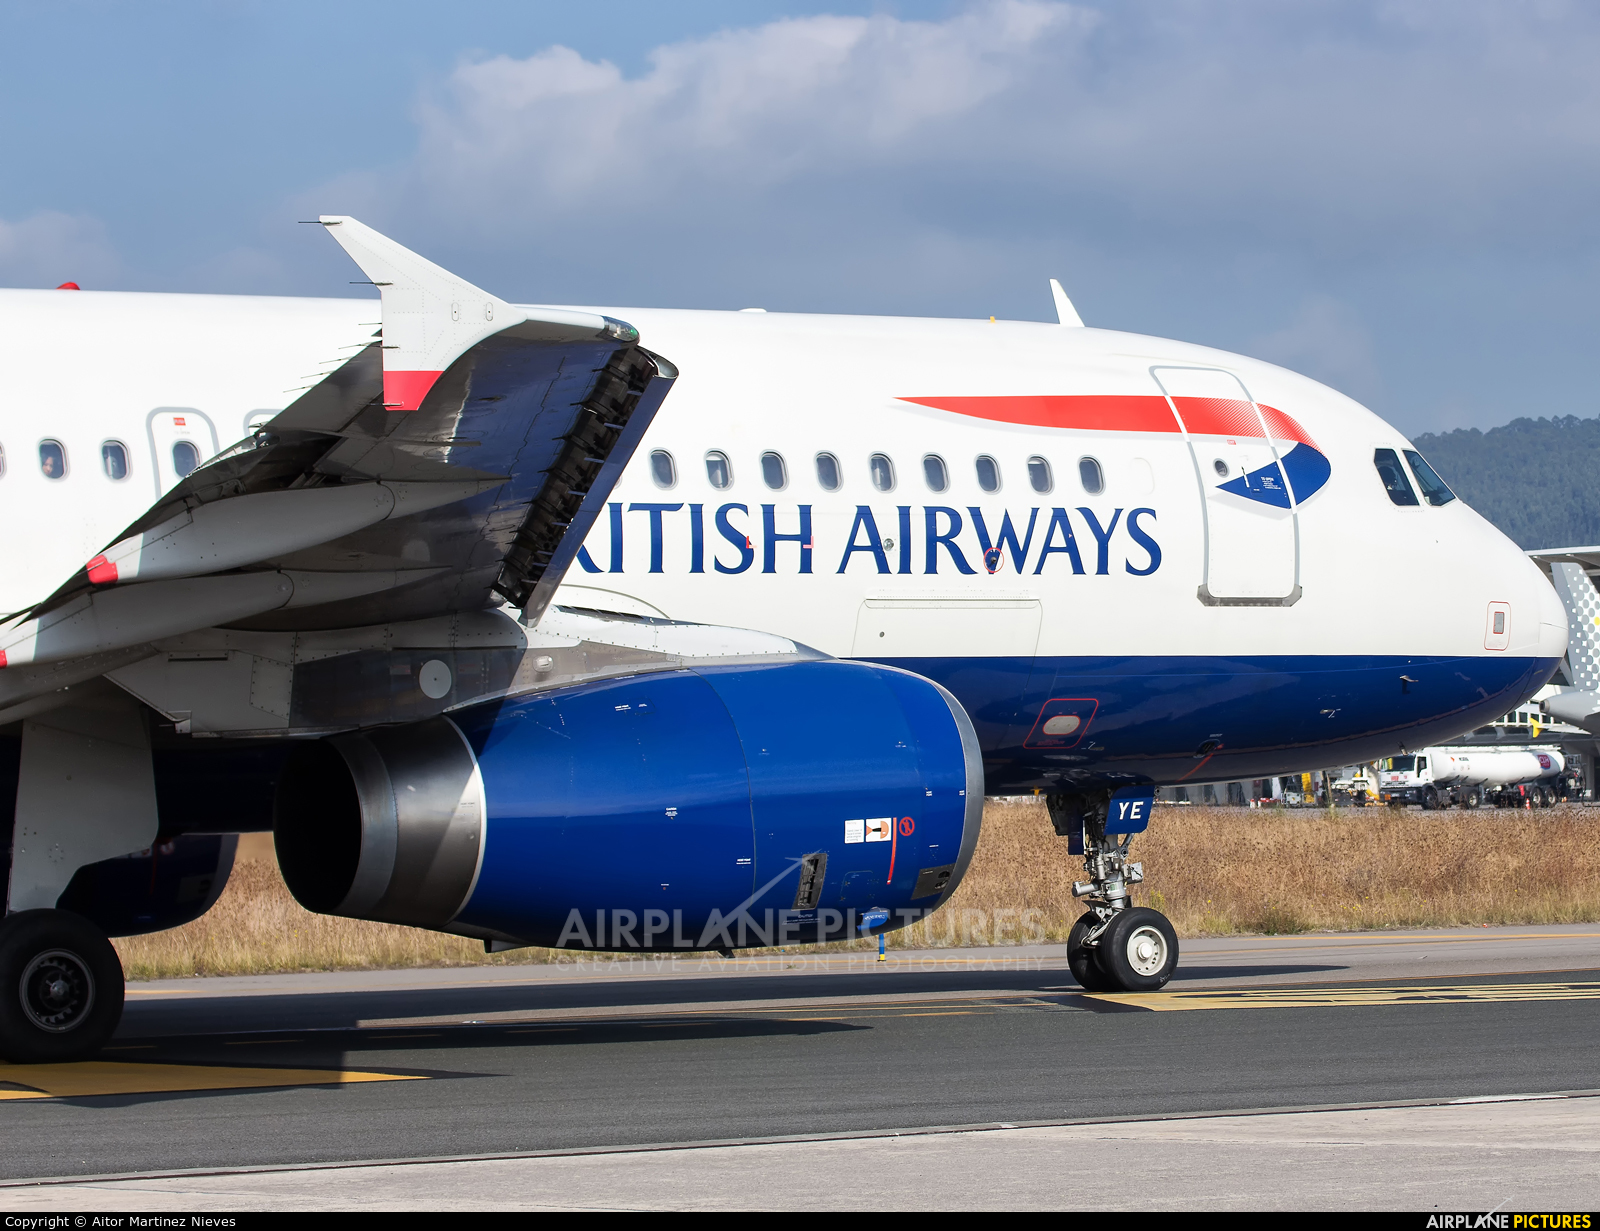 British Airways G-EUYE aircraft at Bilbao